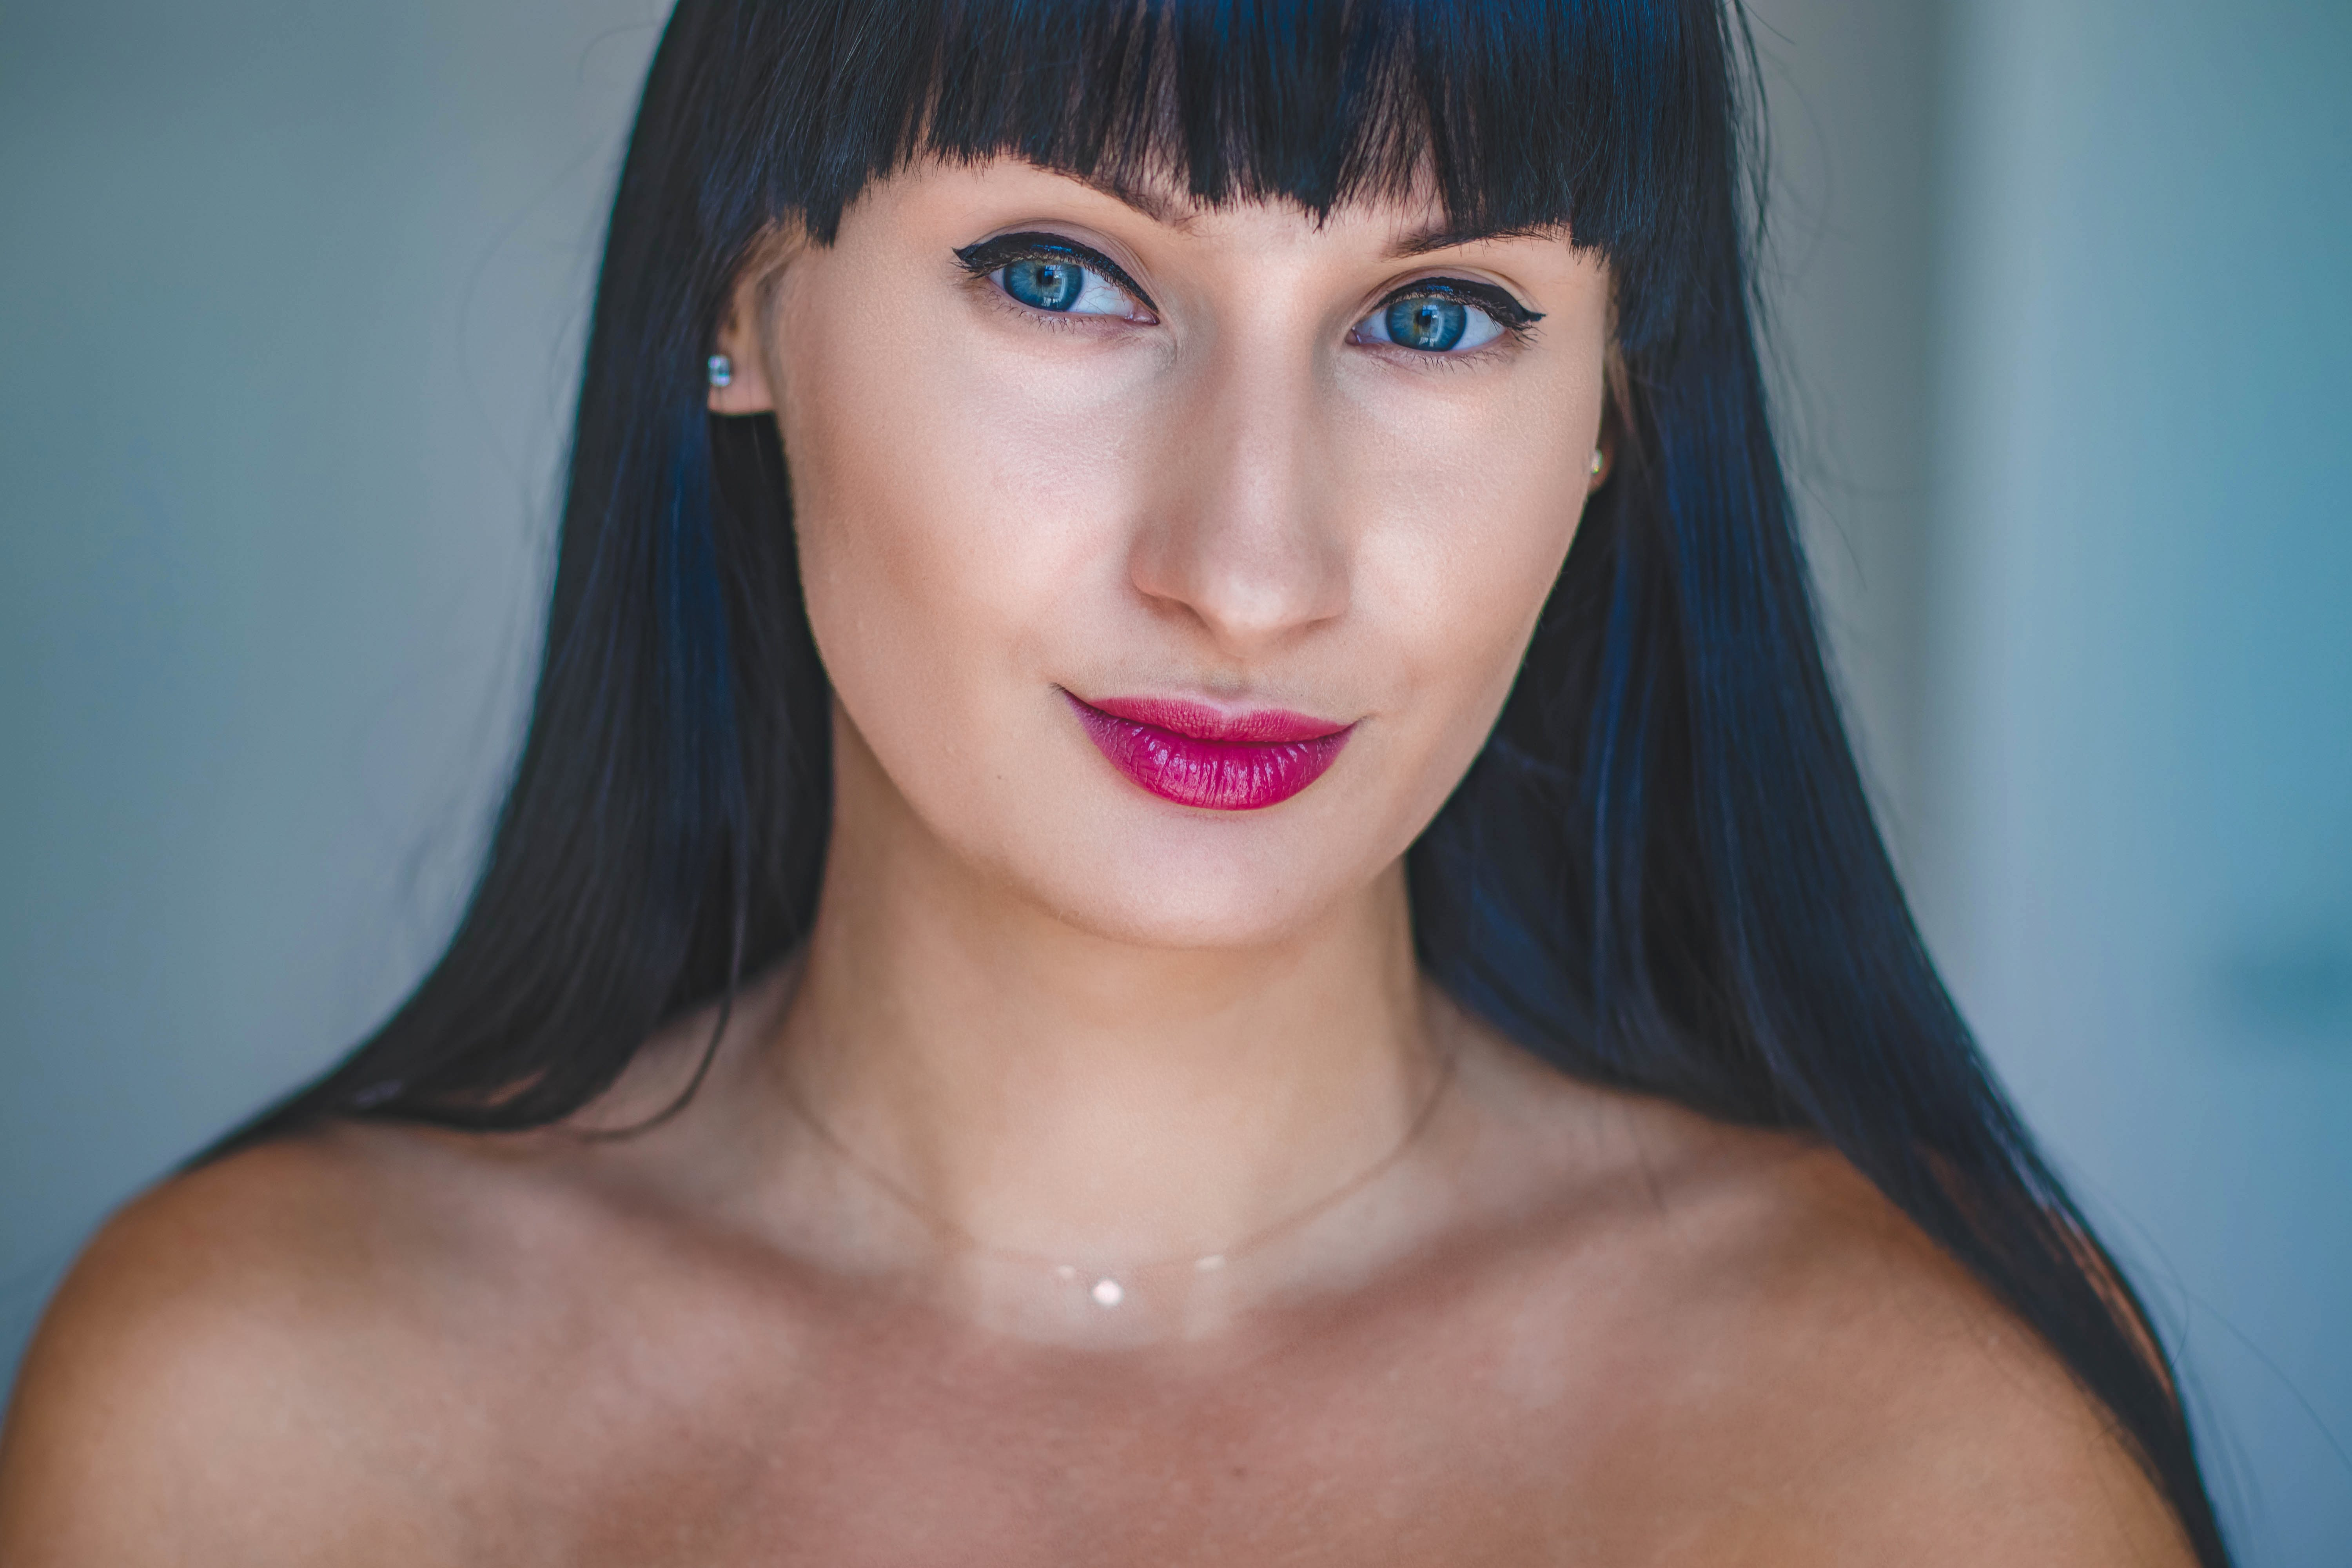 Photo of Woman With Blue Eyes and Black Hair